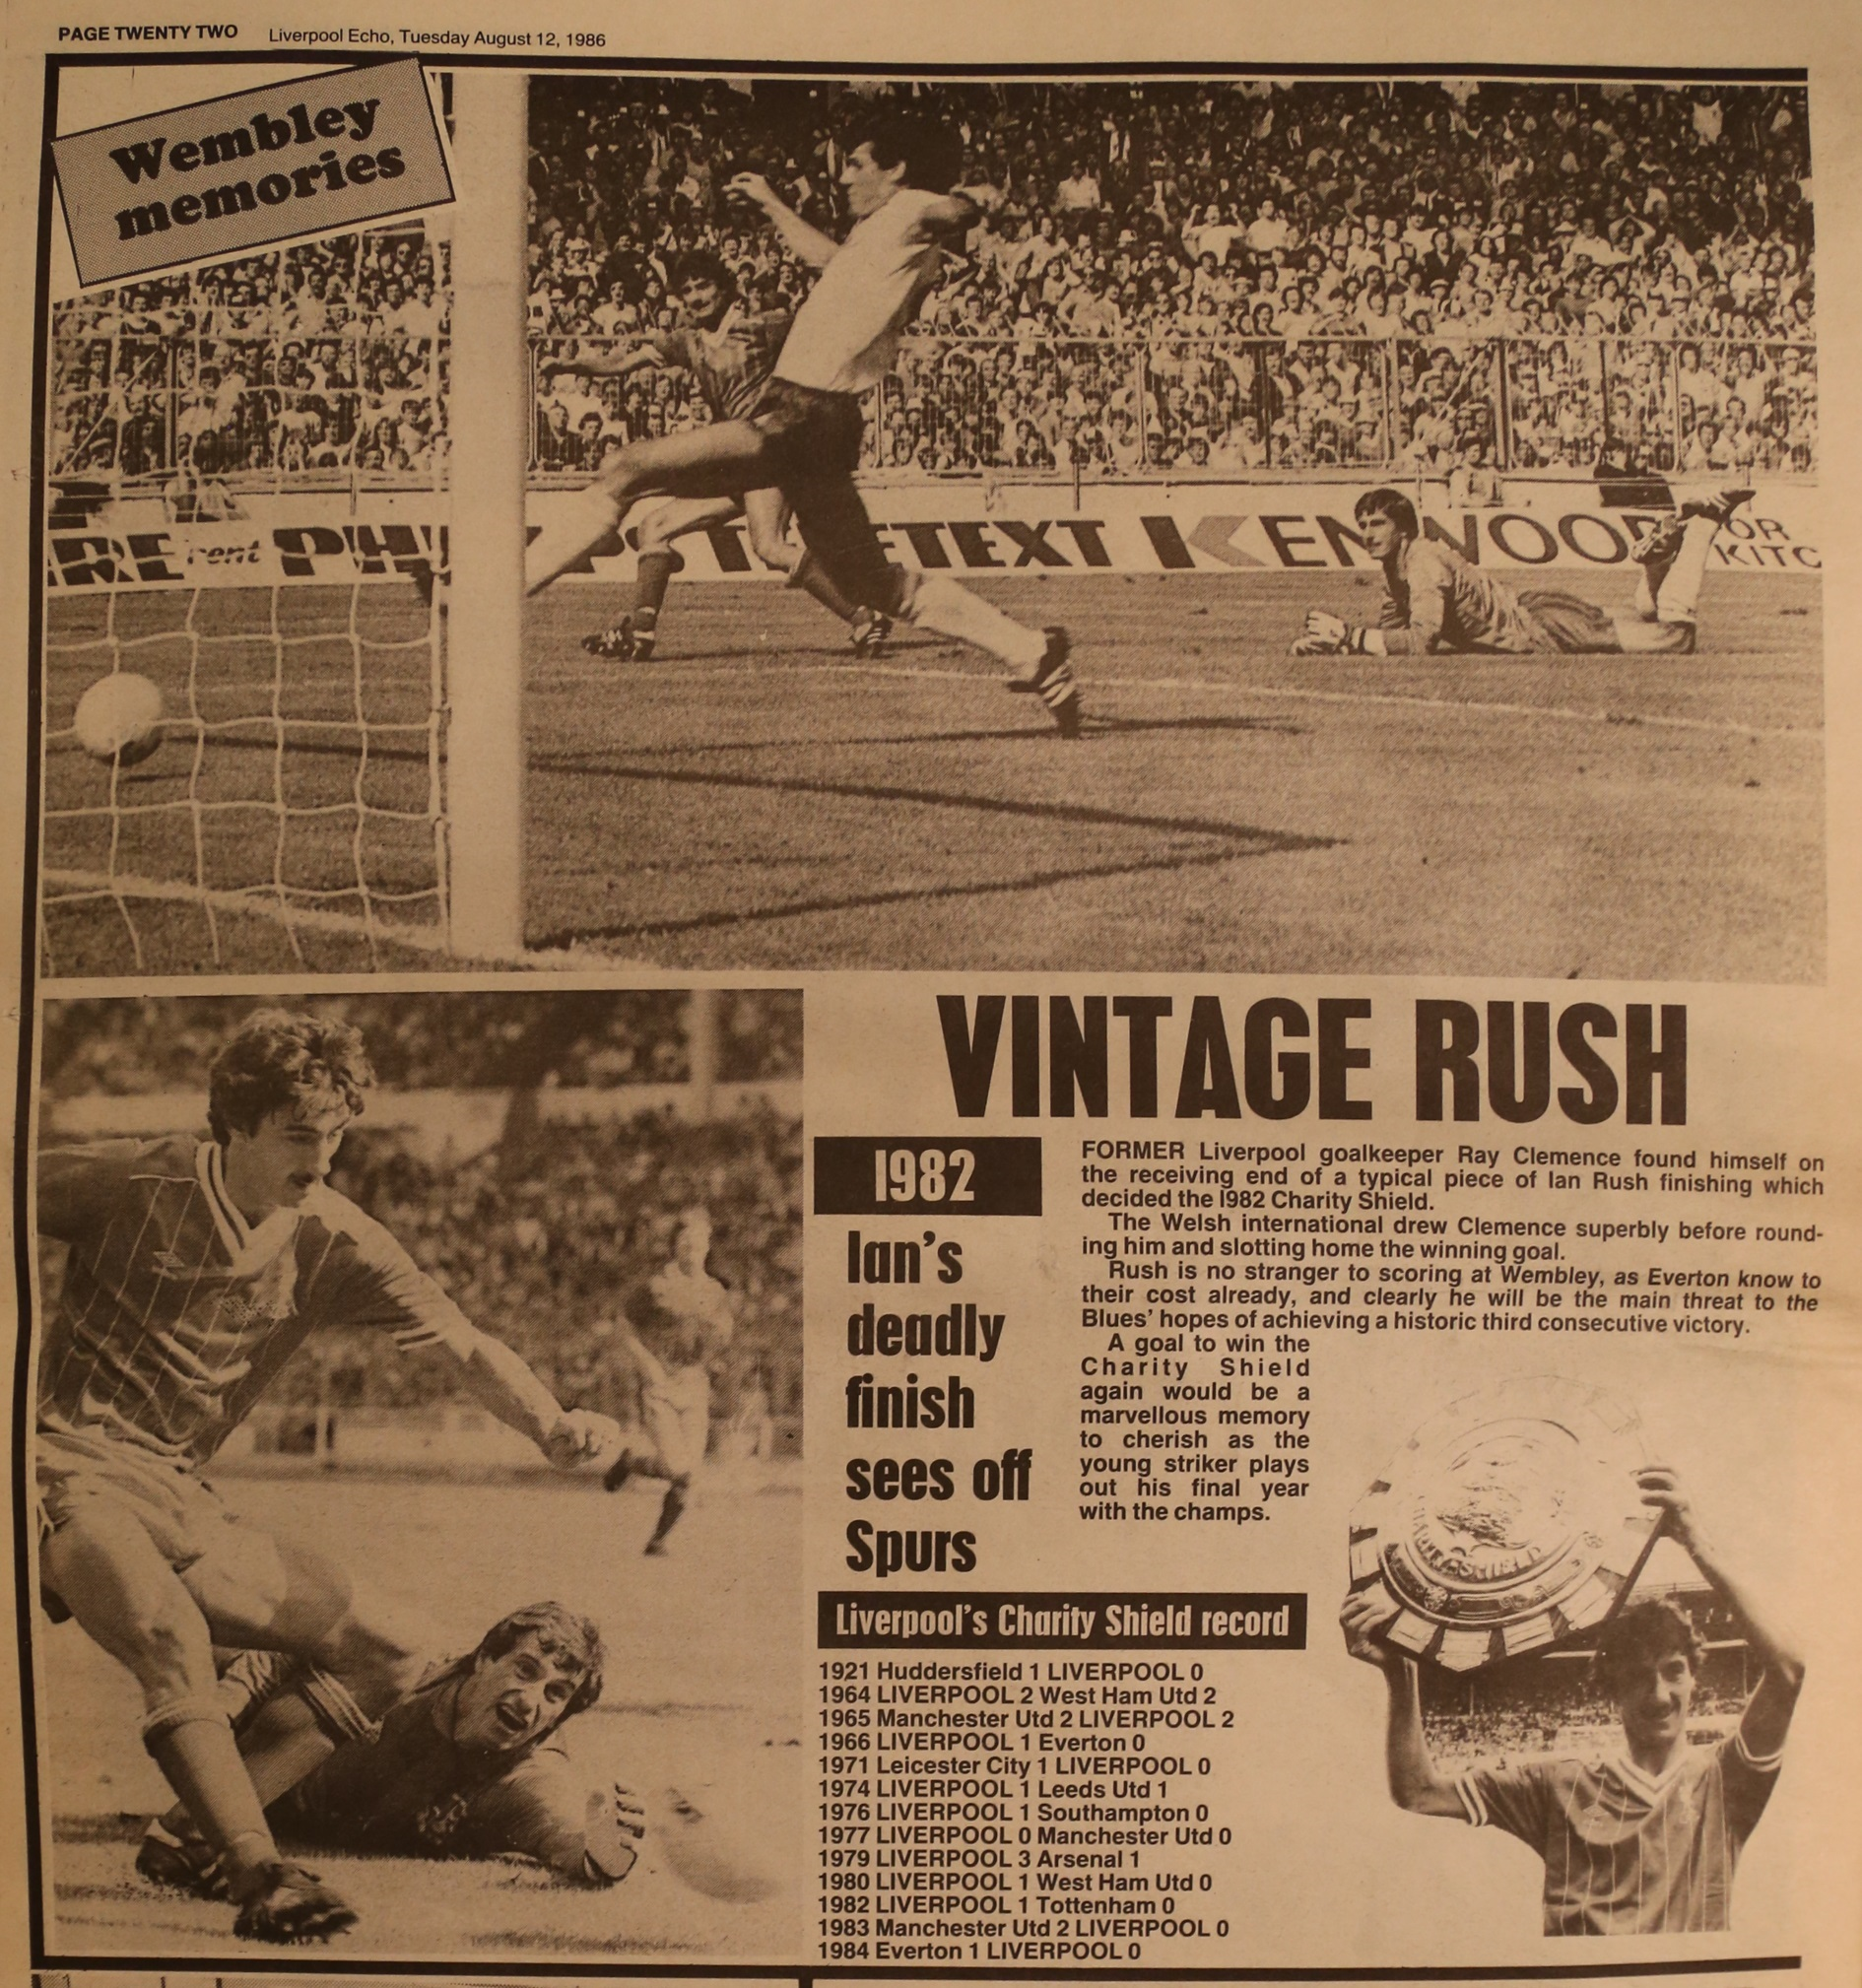 Vintage Rush - 13 March 1982